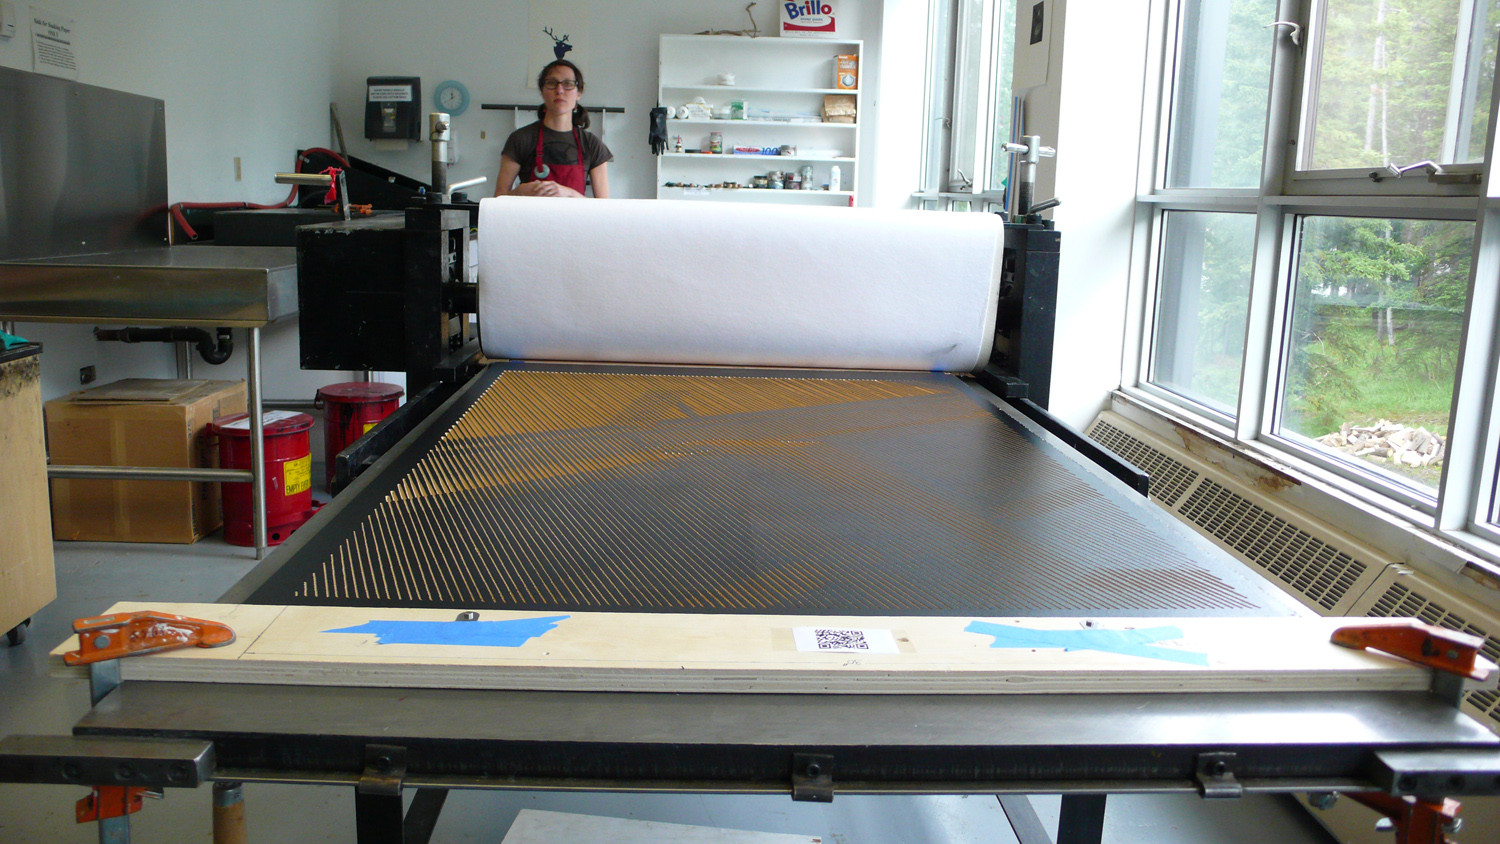 Printing at the Banff Centre